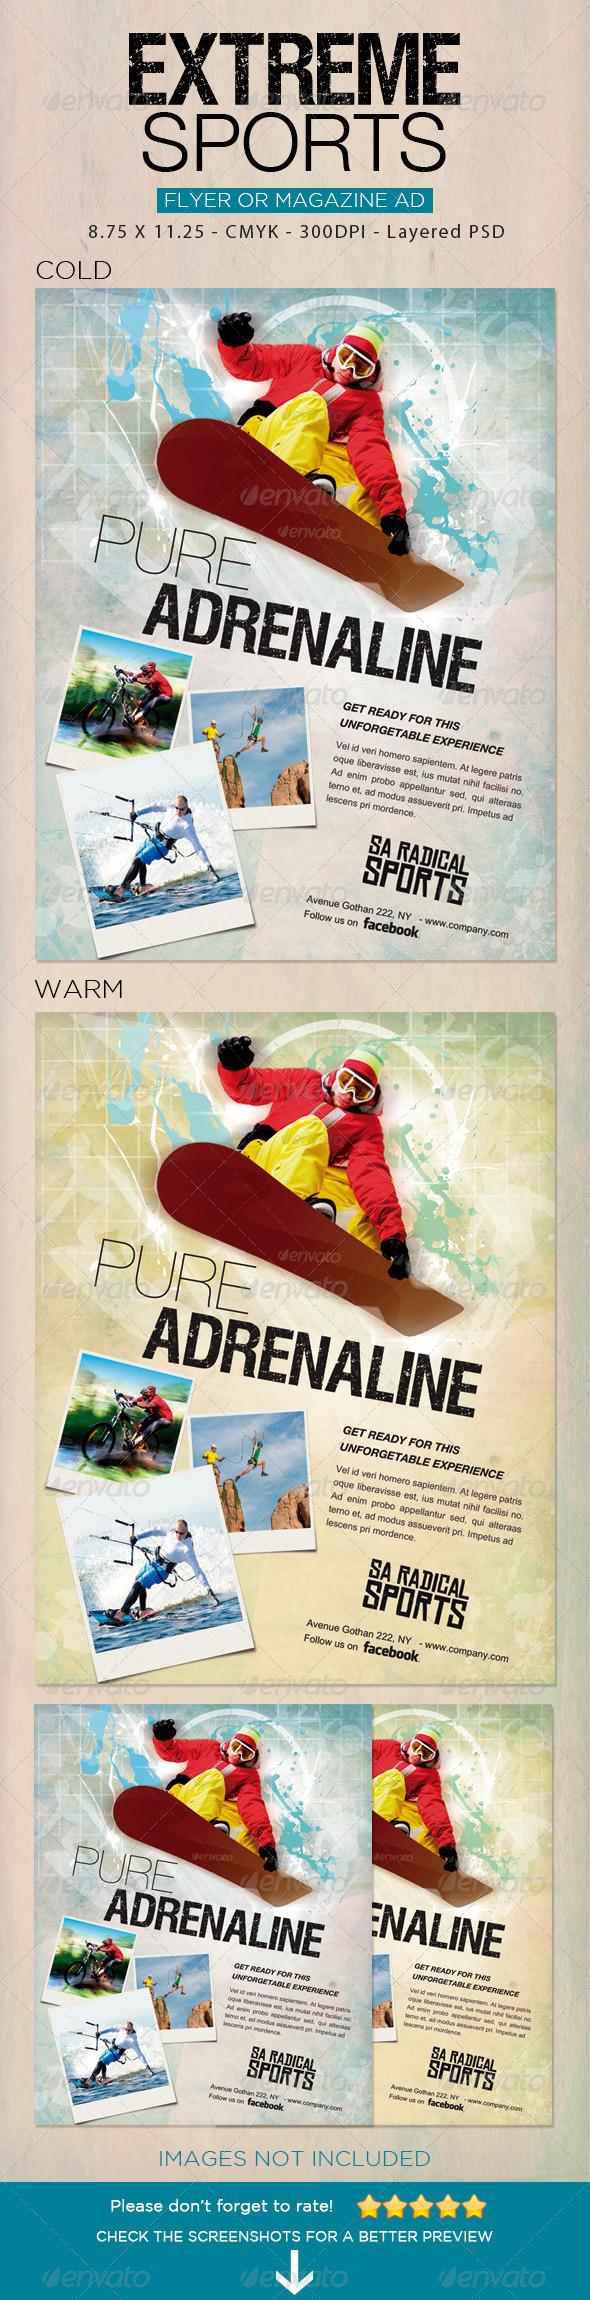 Extreme Sports flyer 2 - Sports Events